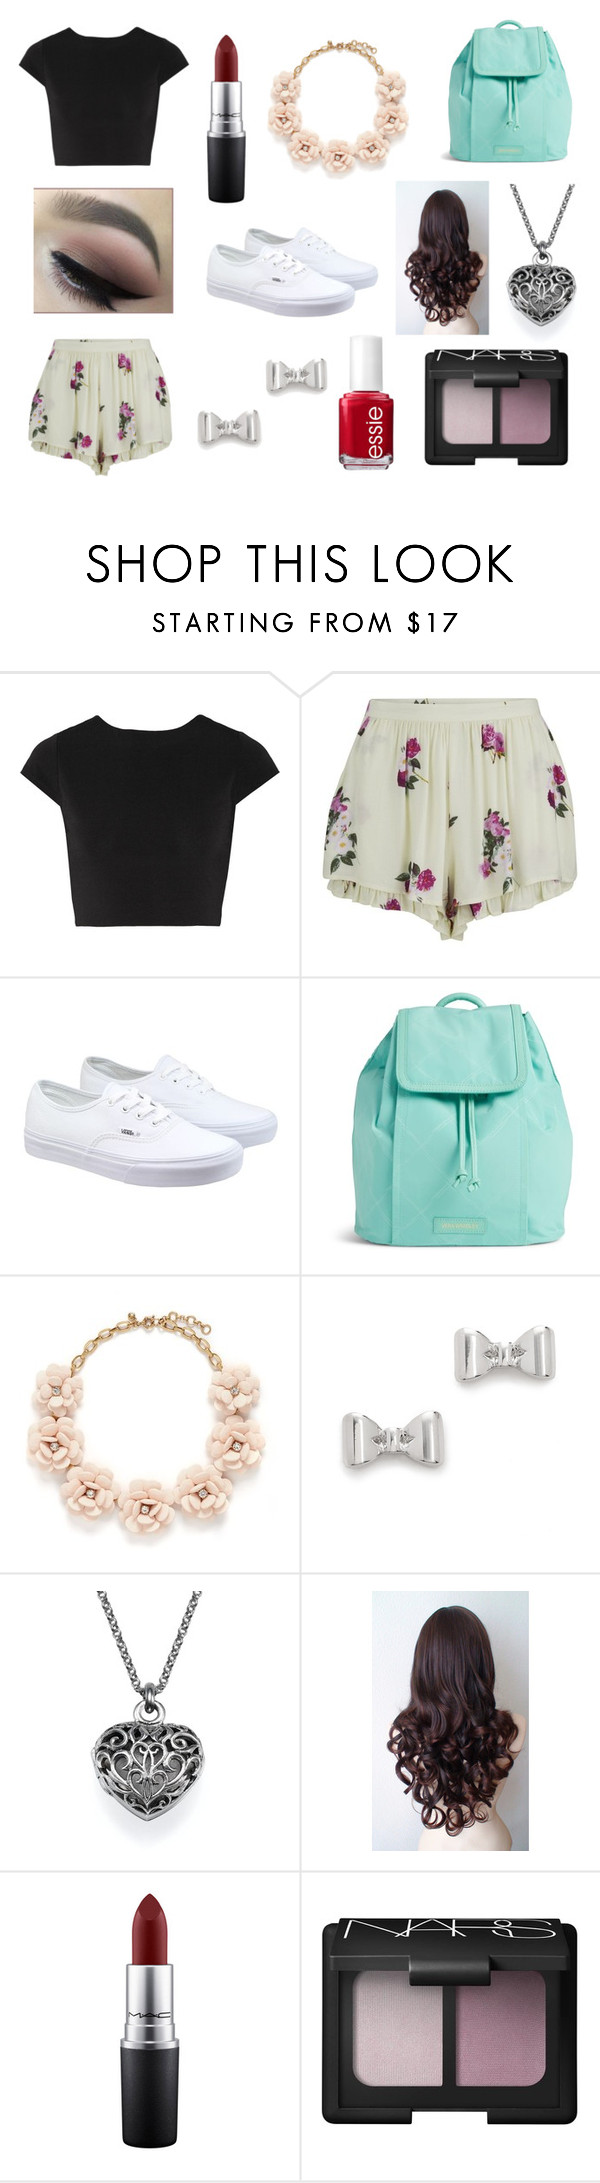 (Insert witty comment here) by rojoubdalia on Polyvore featuring Alice + Olivia, MINKPINK, Vans, Vera Bradley, J.Crew, Marc by Marc Jacobs, NARS Cosmetics, MAC Cosmetics and Essie